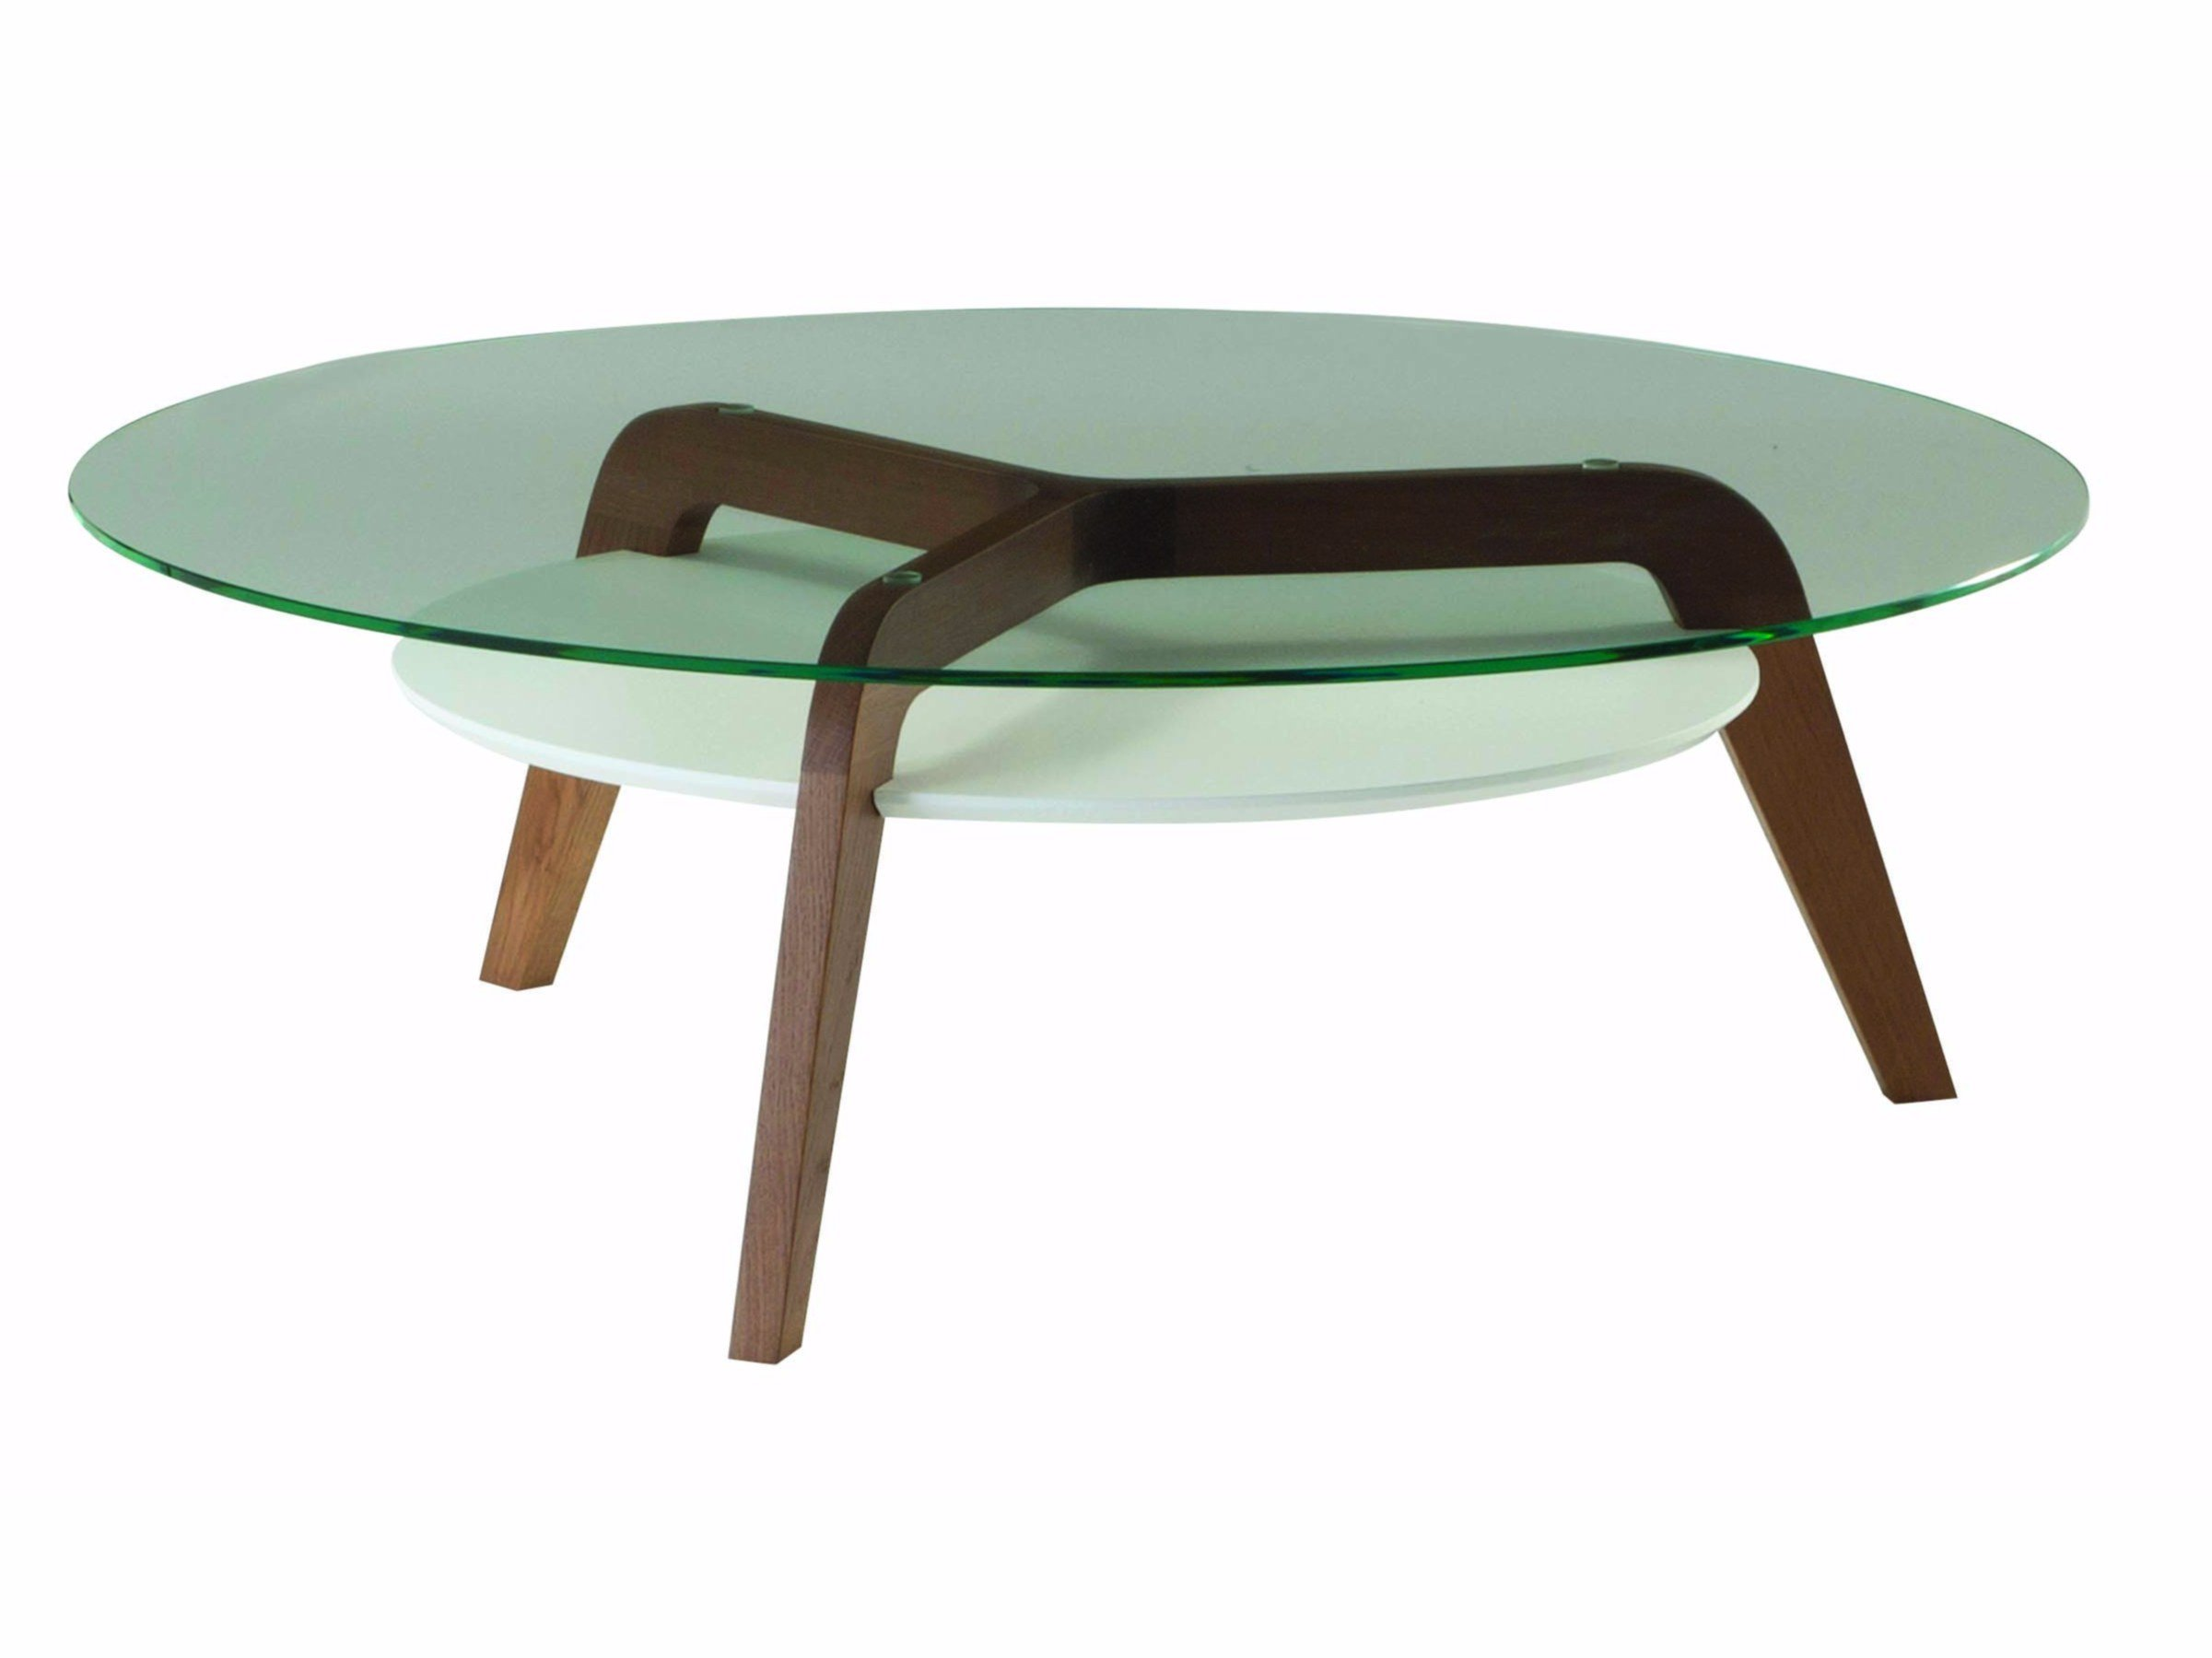 Round glass coffee table for living room flying glass by roche bobois design sacha lakic Roche bobois coffee table